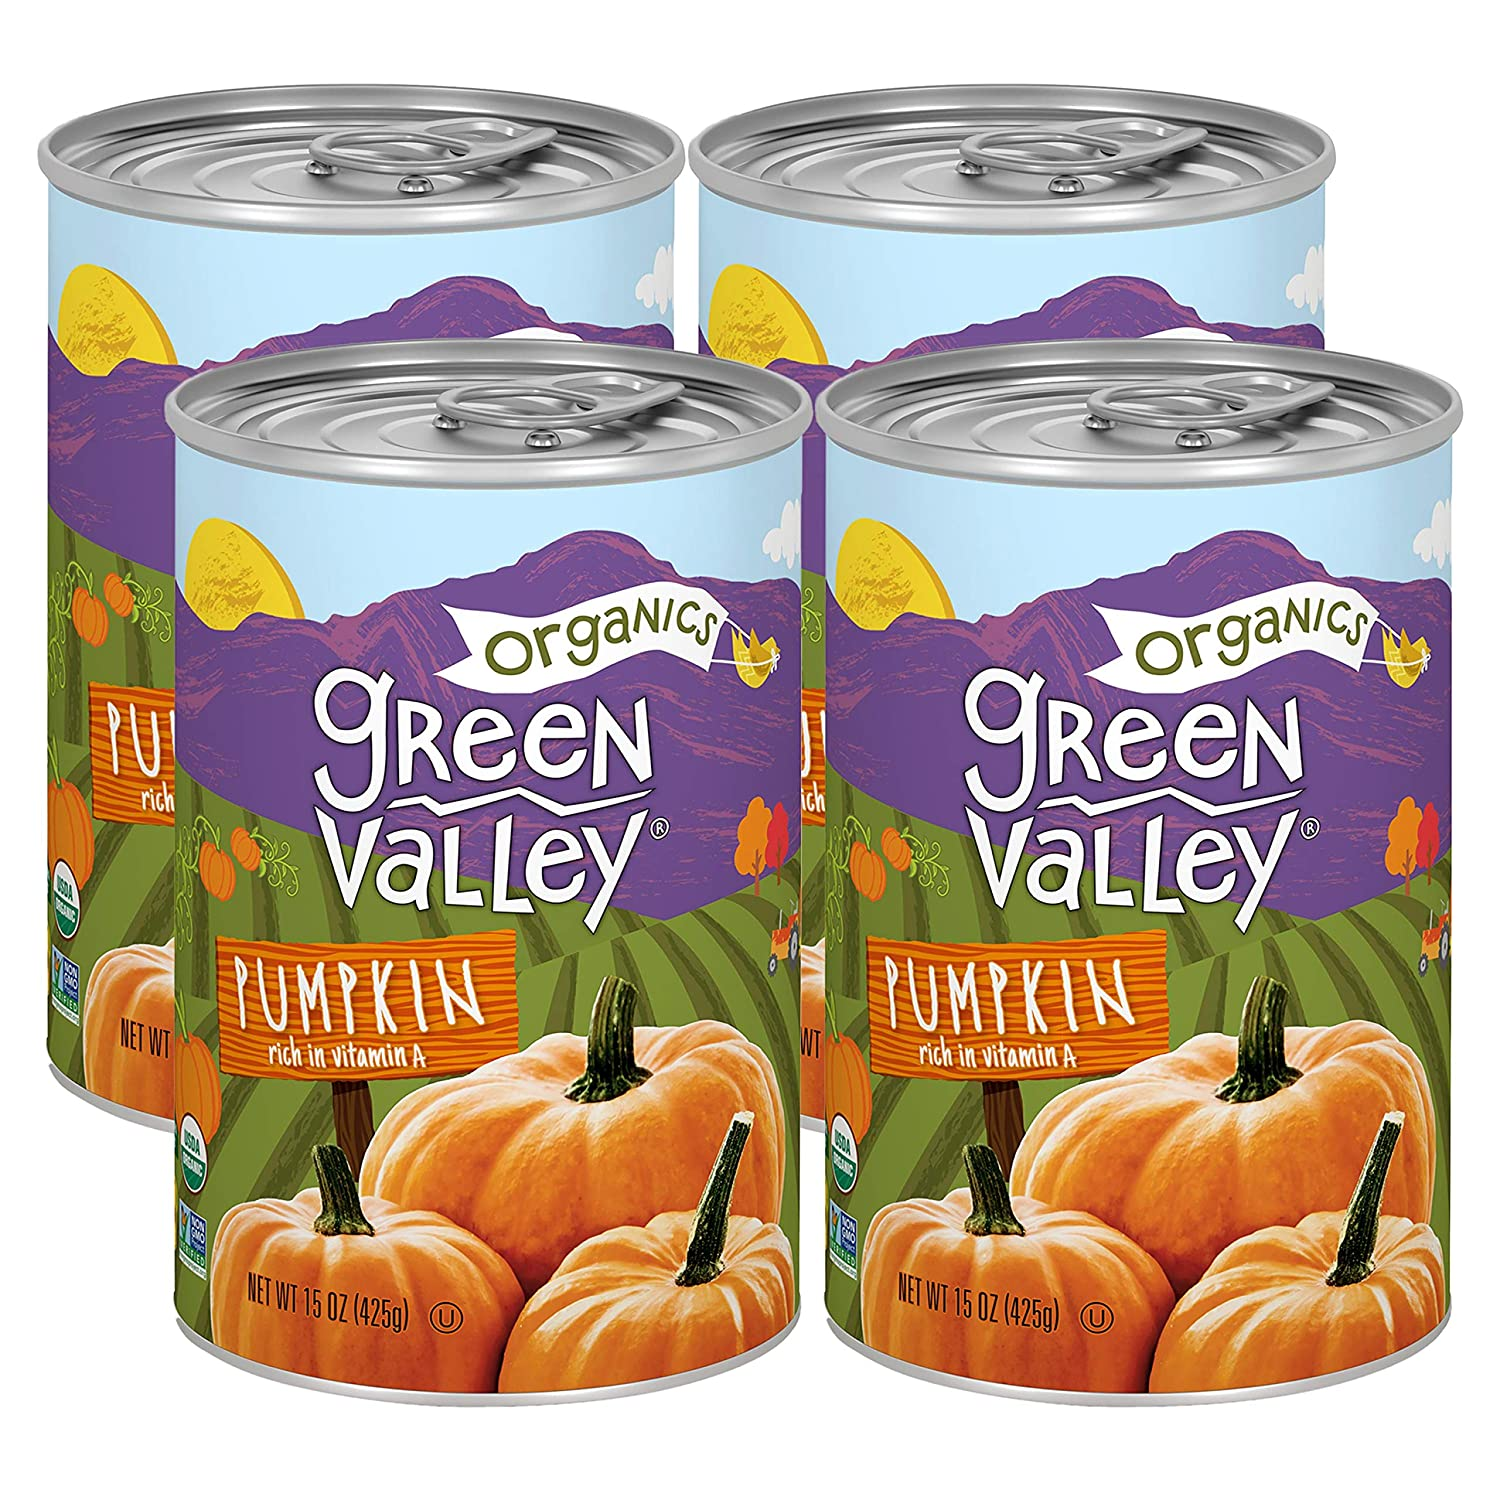 Green Valley Organics Pumpkin | Certified Organic | 100% Dickinson Variety | Sweet Earthy Delicious | Firm & Smooth | Vibrant Autumn Orange | Non-GMO | American Grown & Made | 15 oz (Pack of 4)